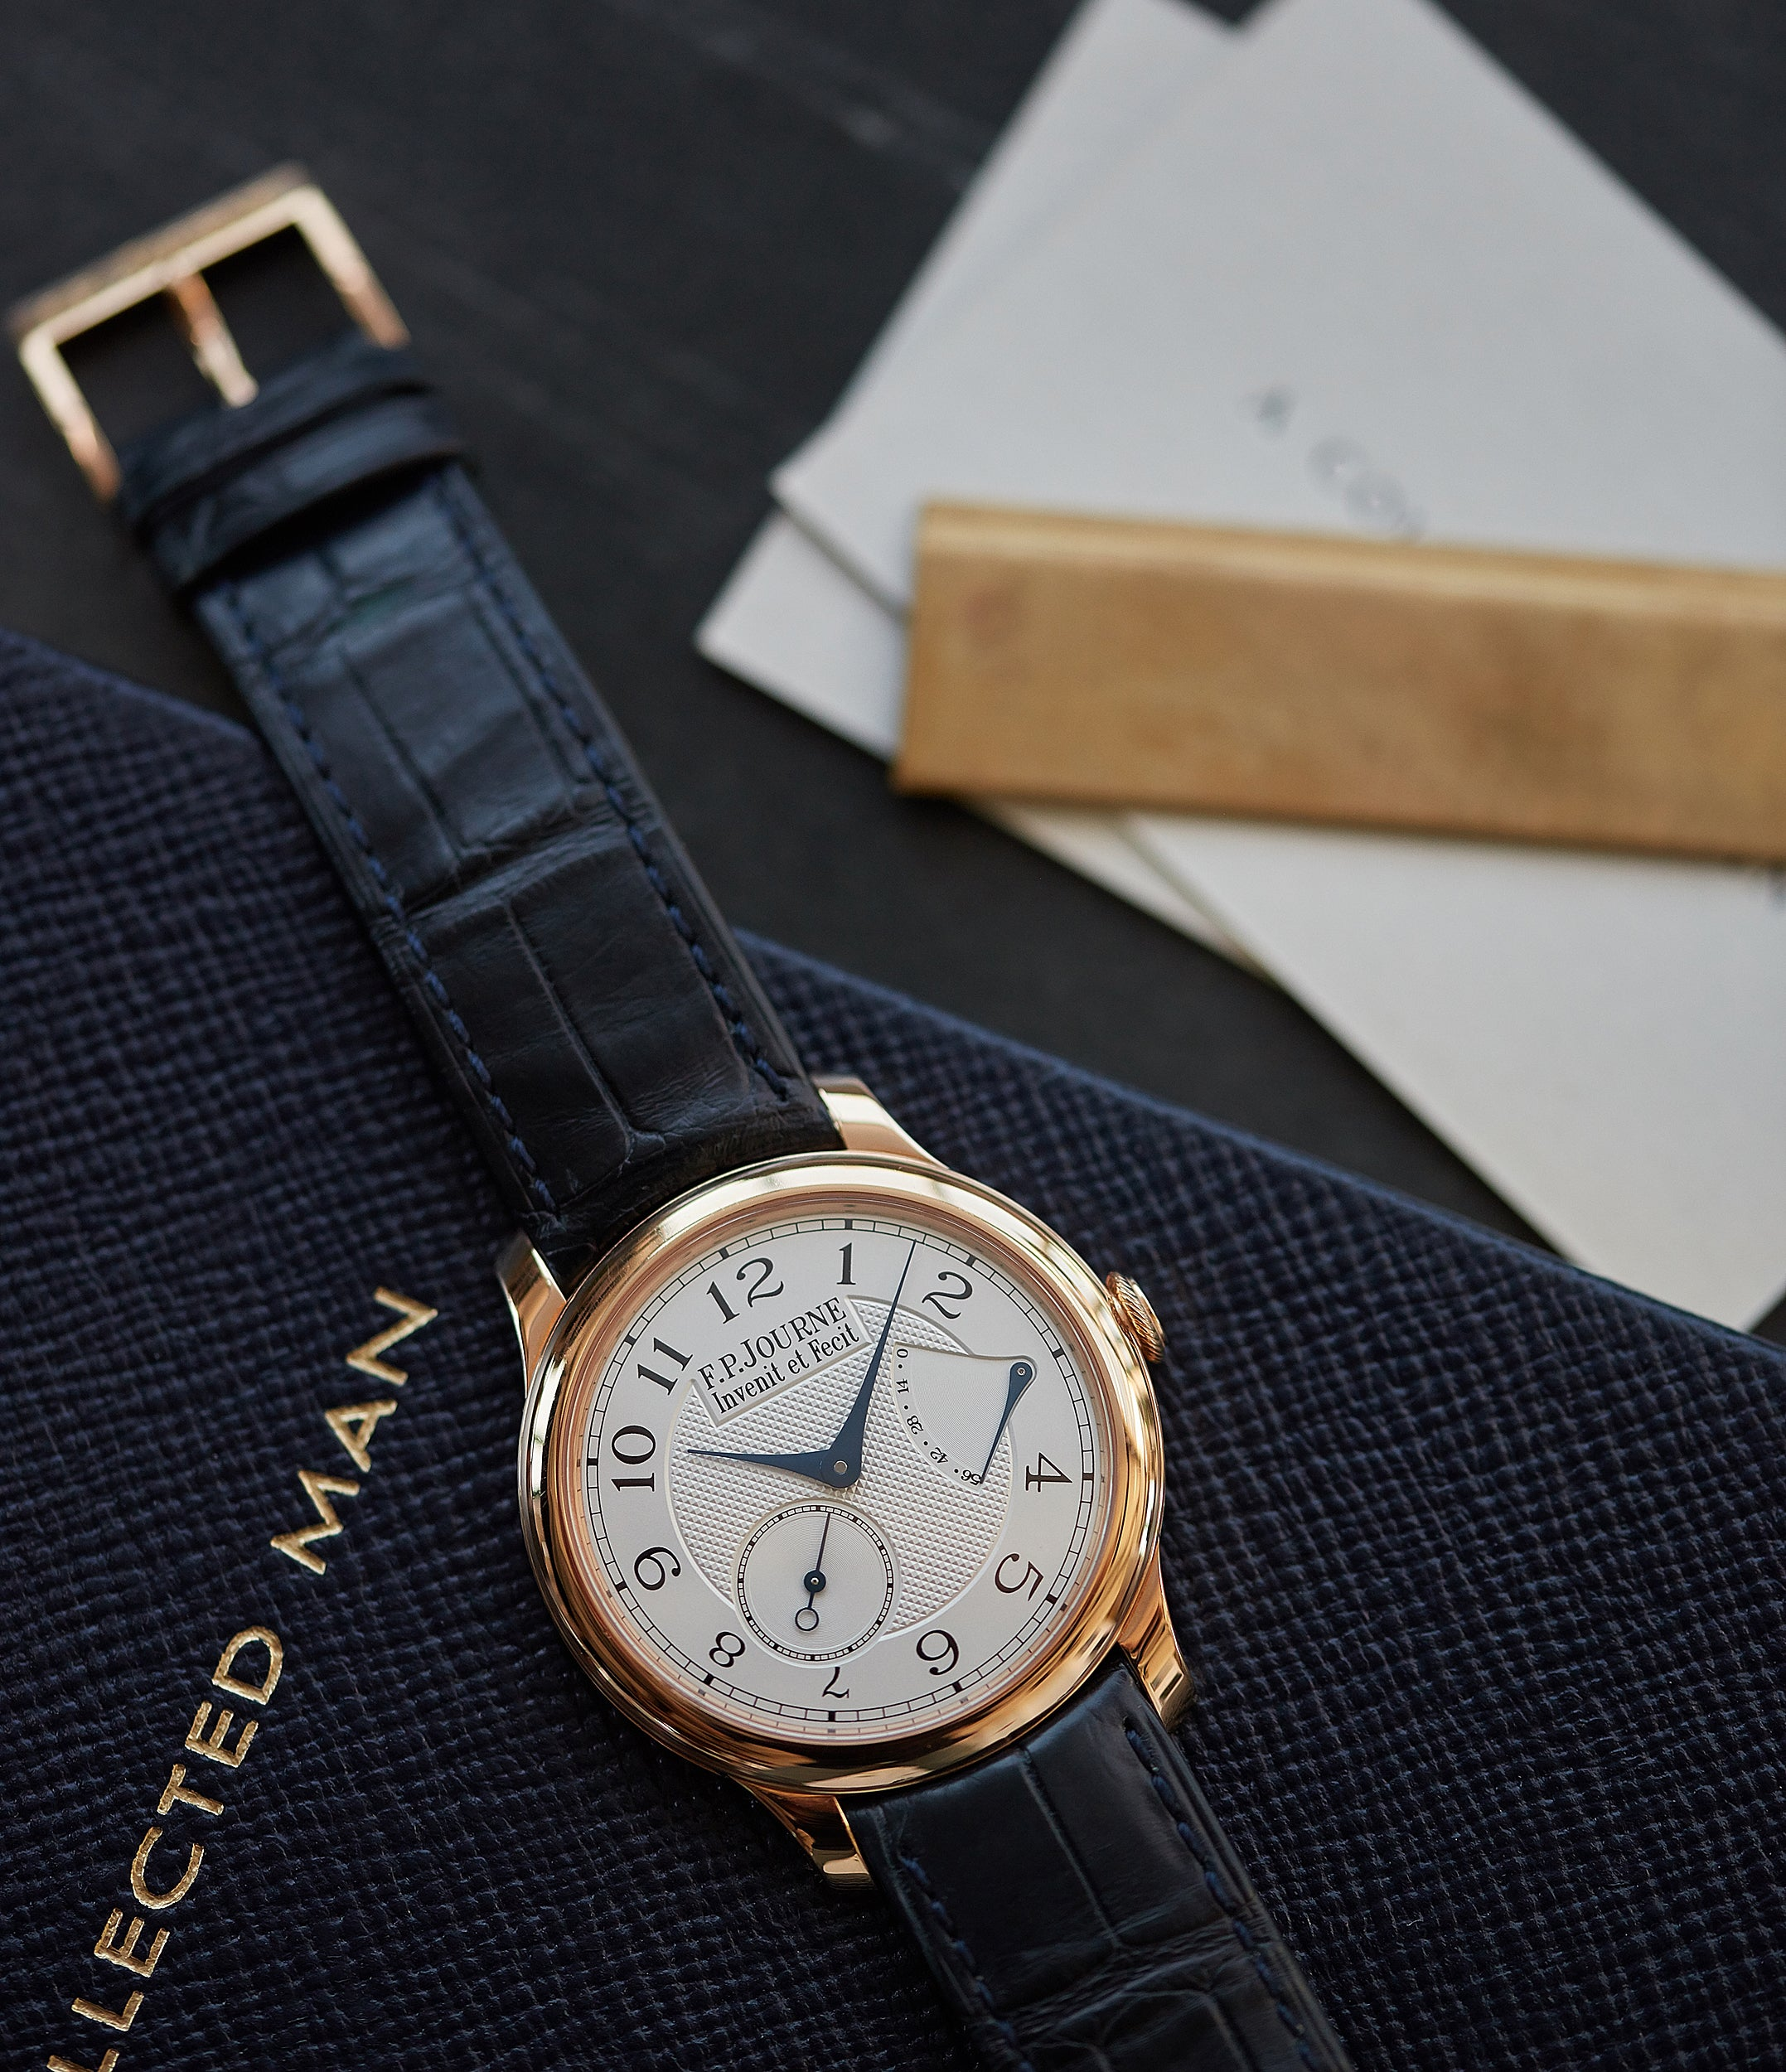 shop F. P. Journe Chronometre Souverain silver dial rose gold dress watch for sale online at A Collected Man London UK specialist of independent watchmakers